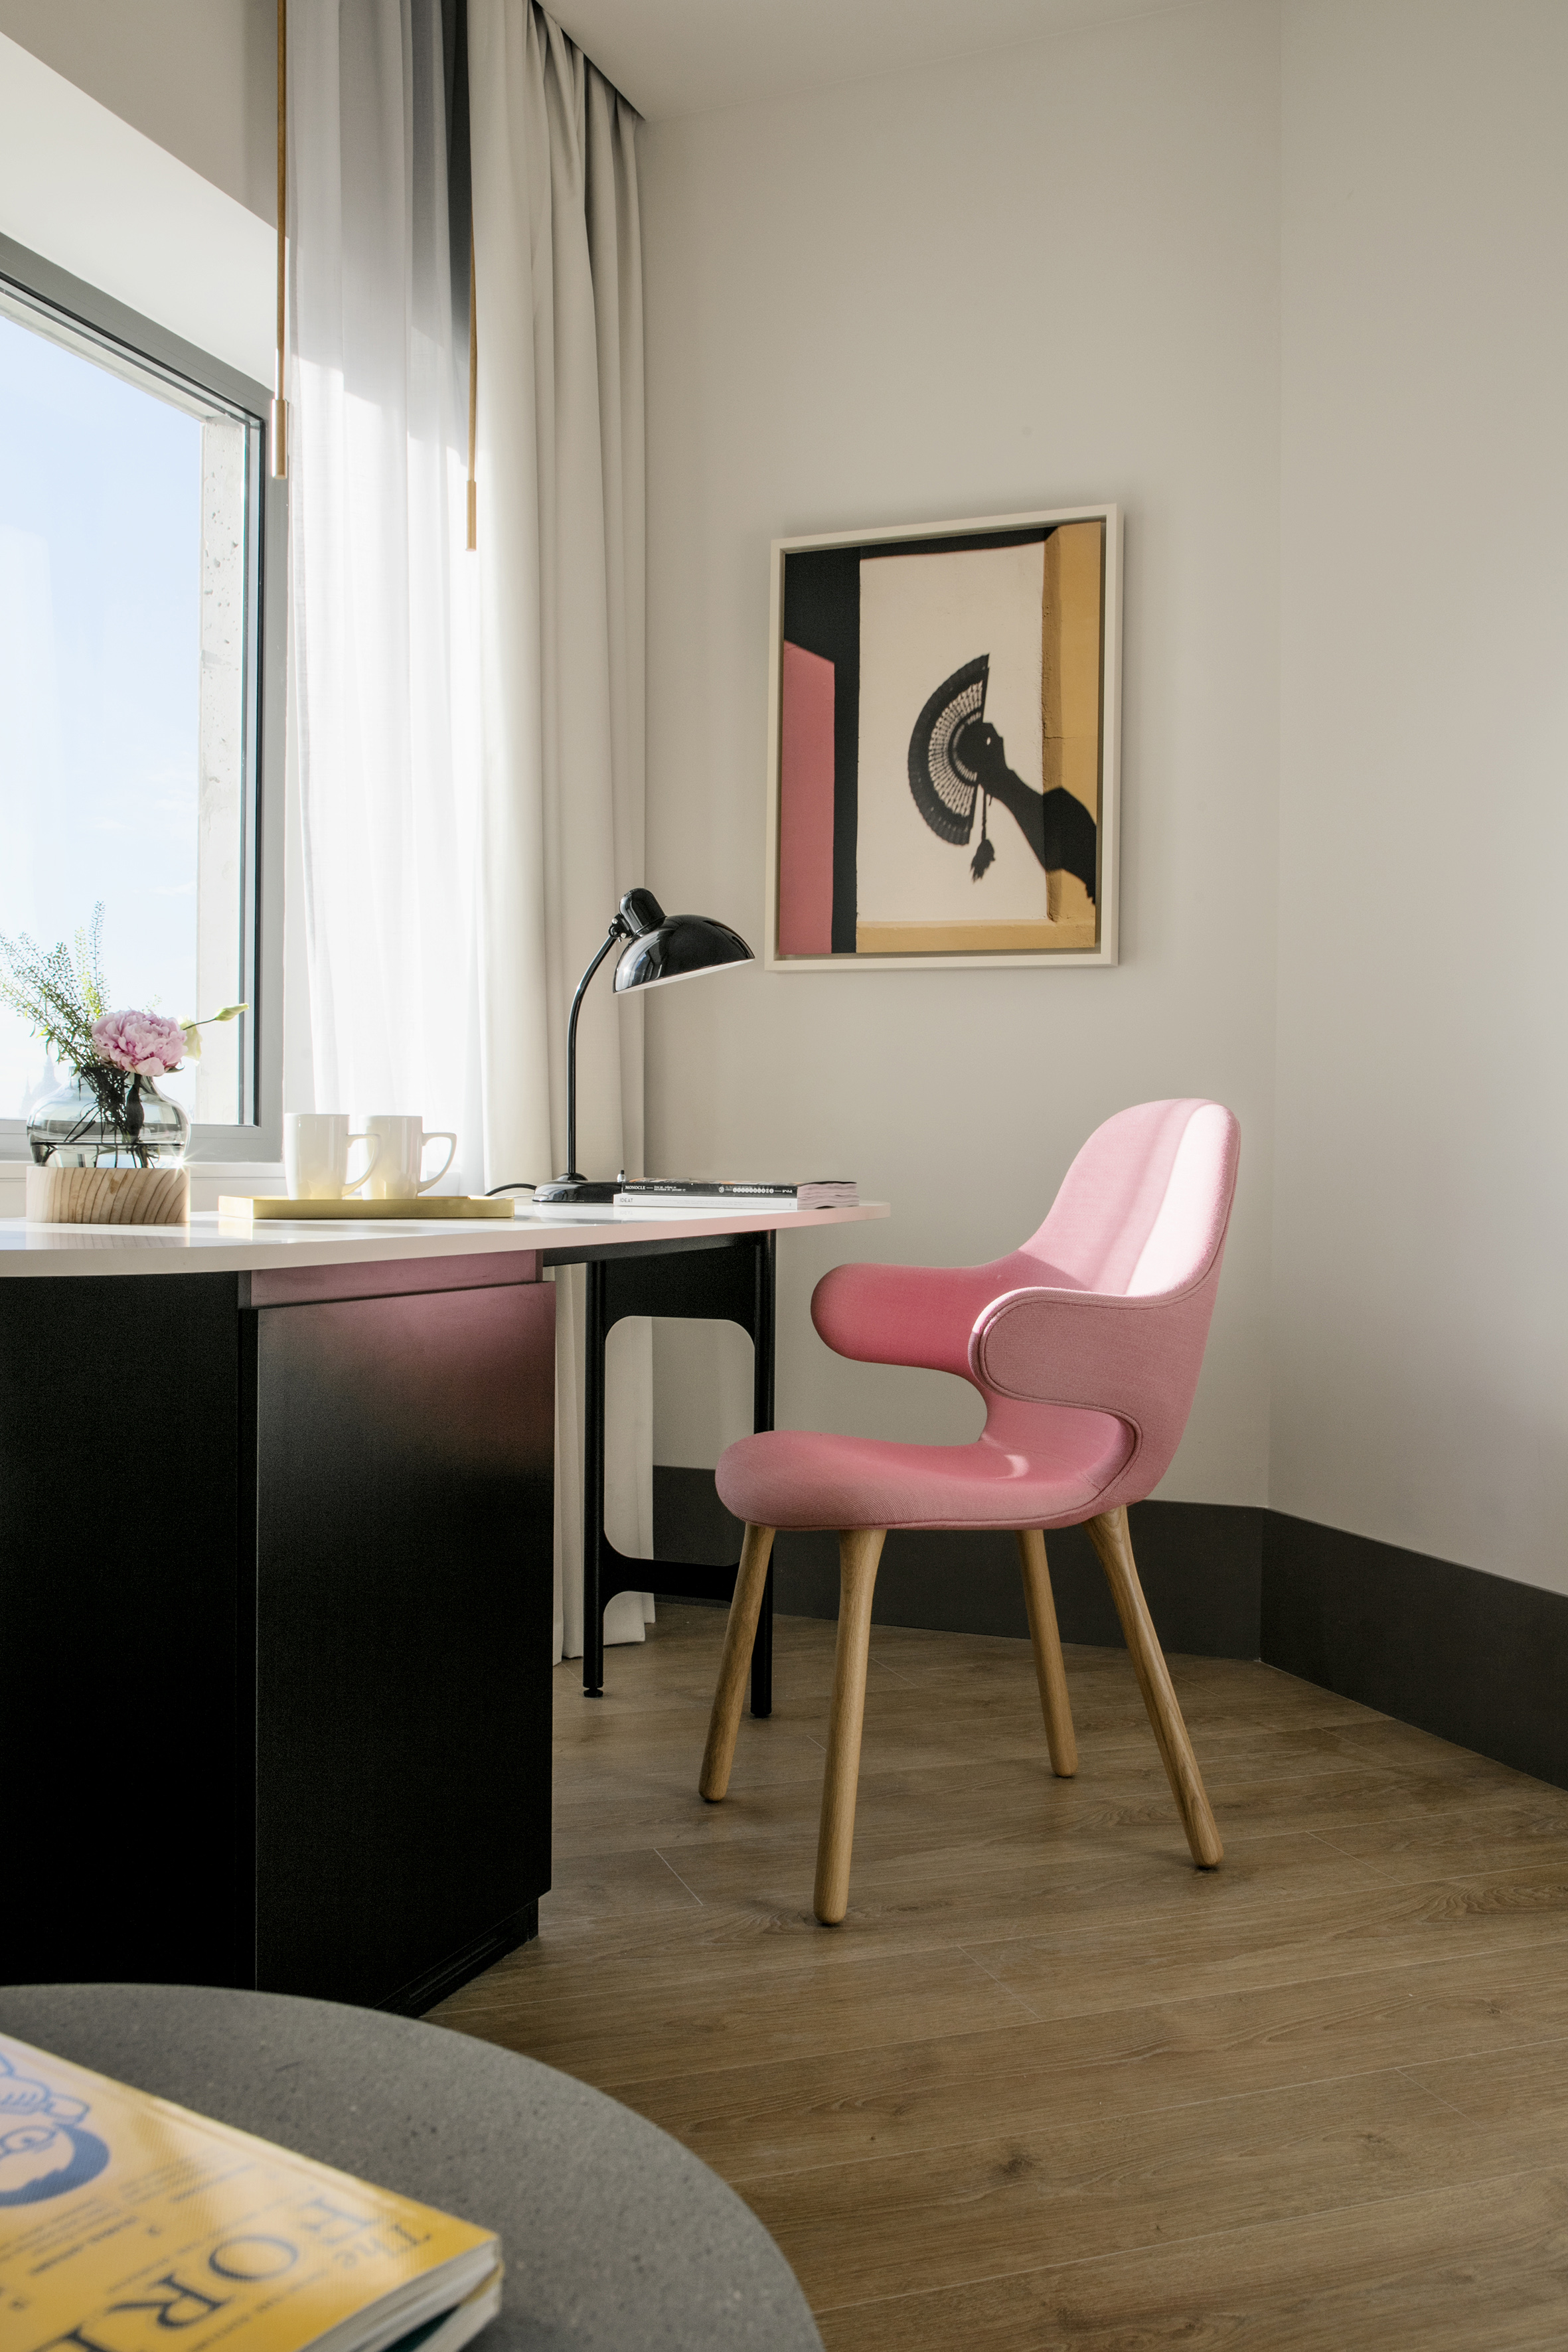 Standard Room: Catch Chair by &tradition, Kaiser Idell Table Lamp by Fritz Hansen, Wall Picture by KlunderBie for Hotel Barceló Torre de Madrid